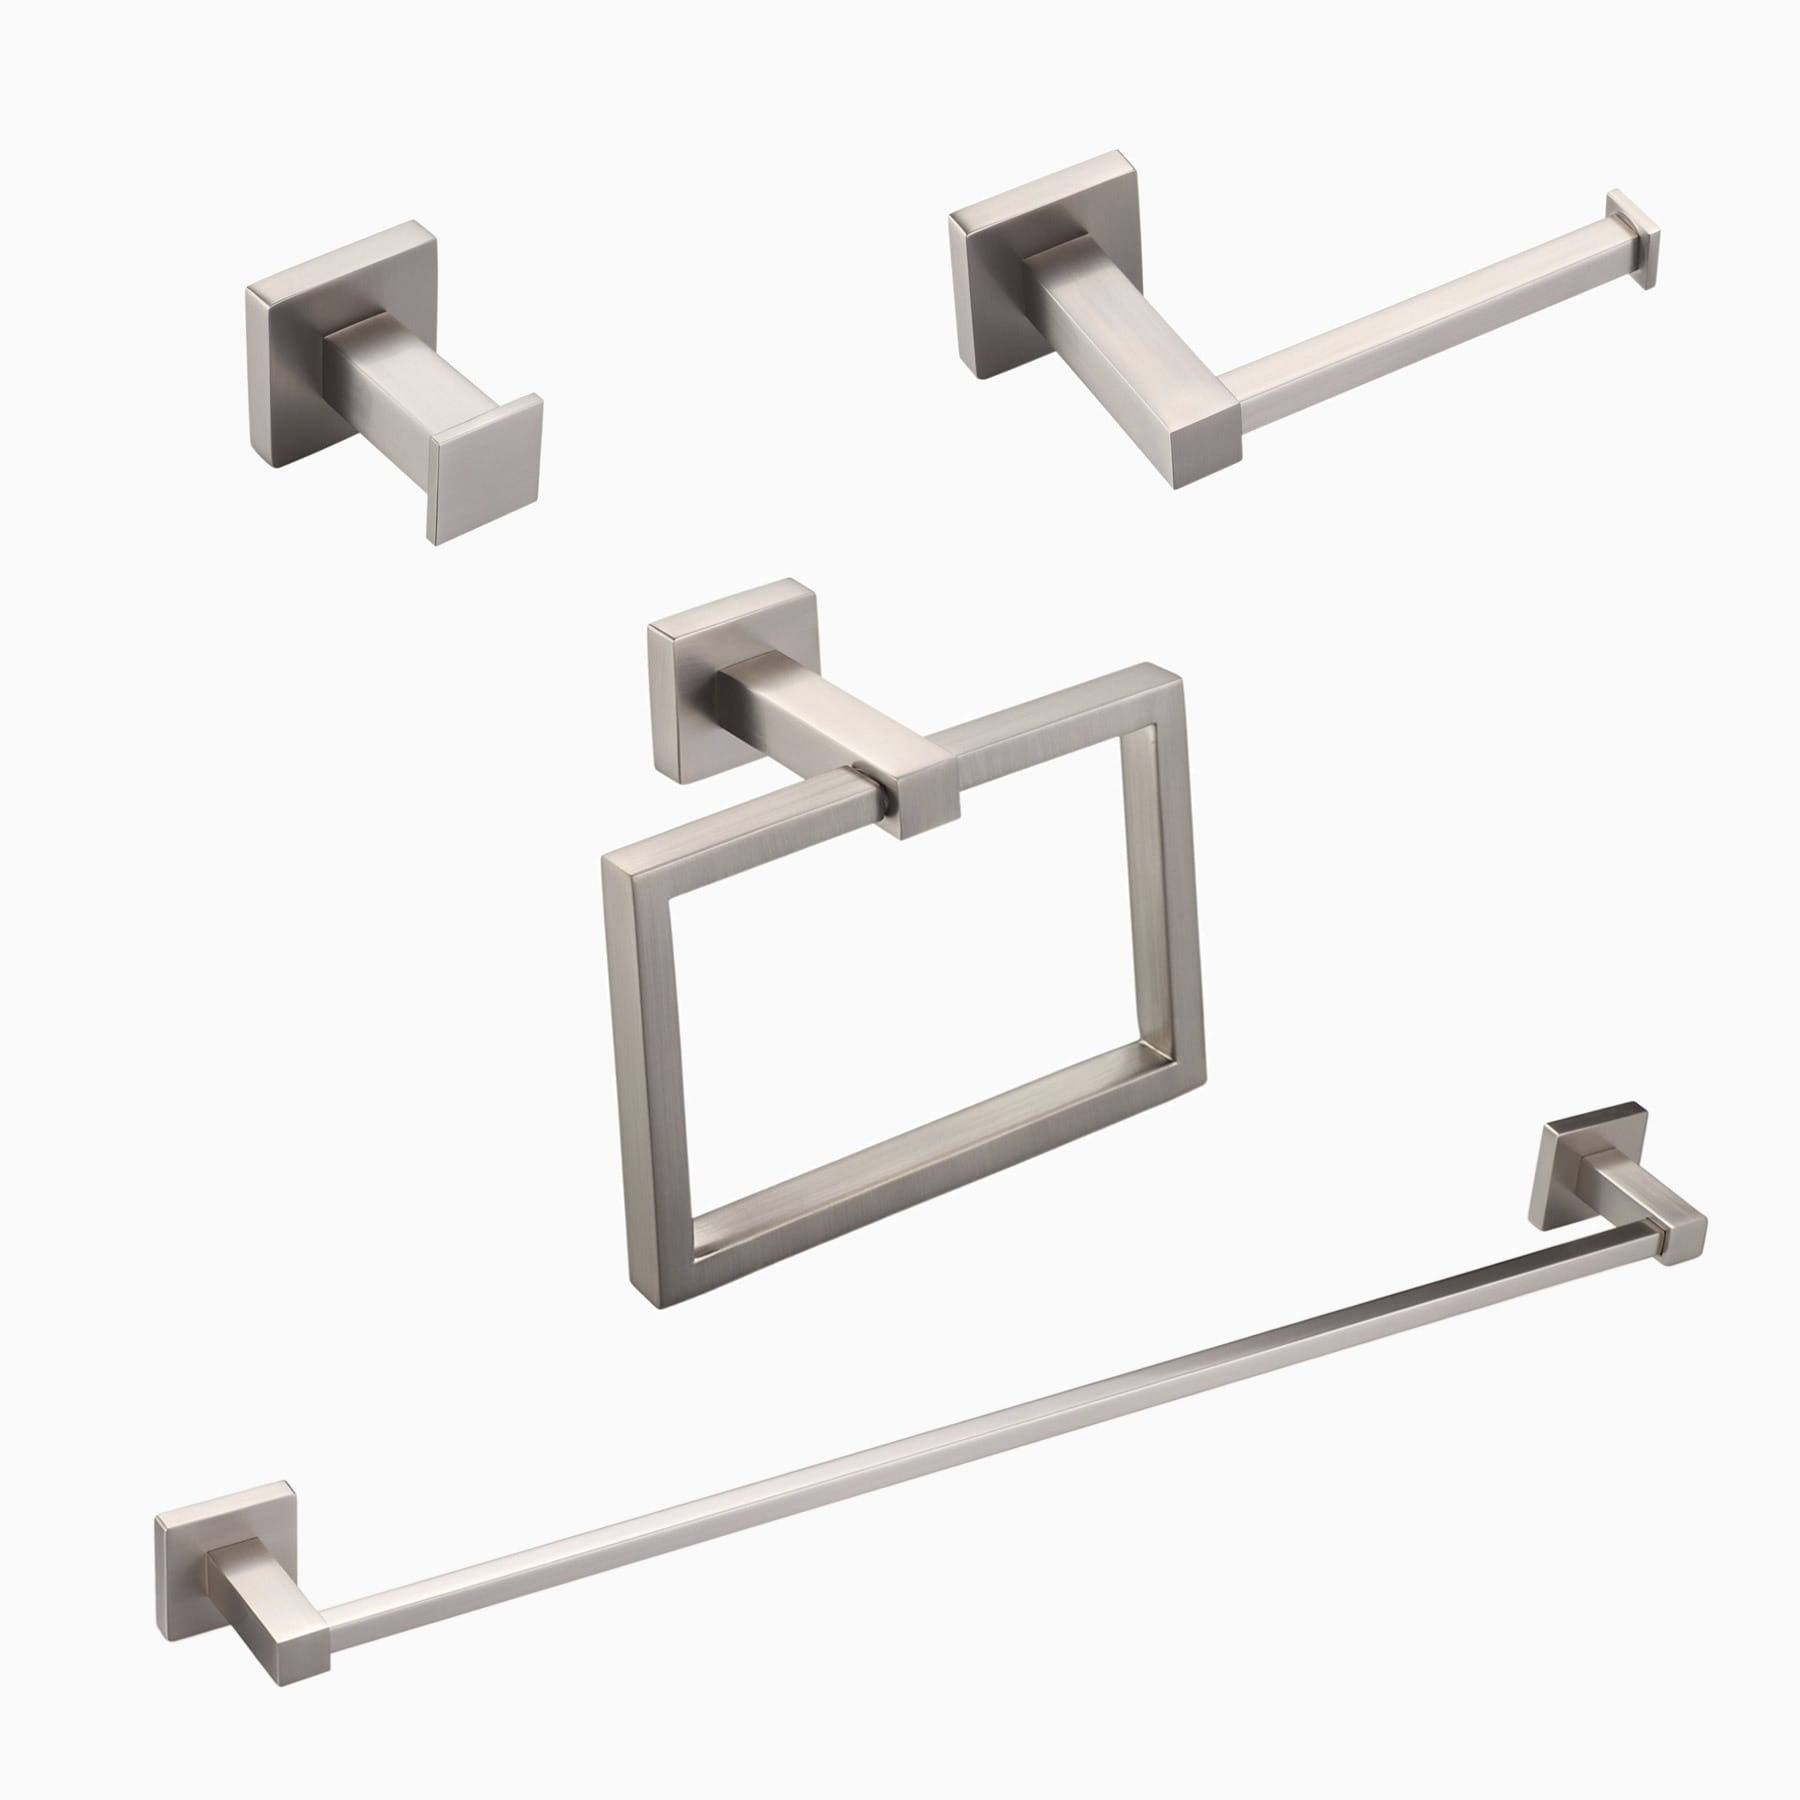 "Brushed Nickel Bathroom Hardware Accessories 4 Piece Set with 24/"" Towel Bar"